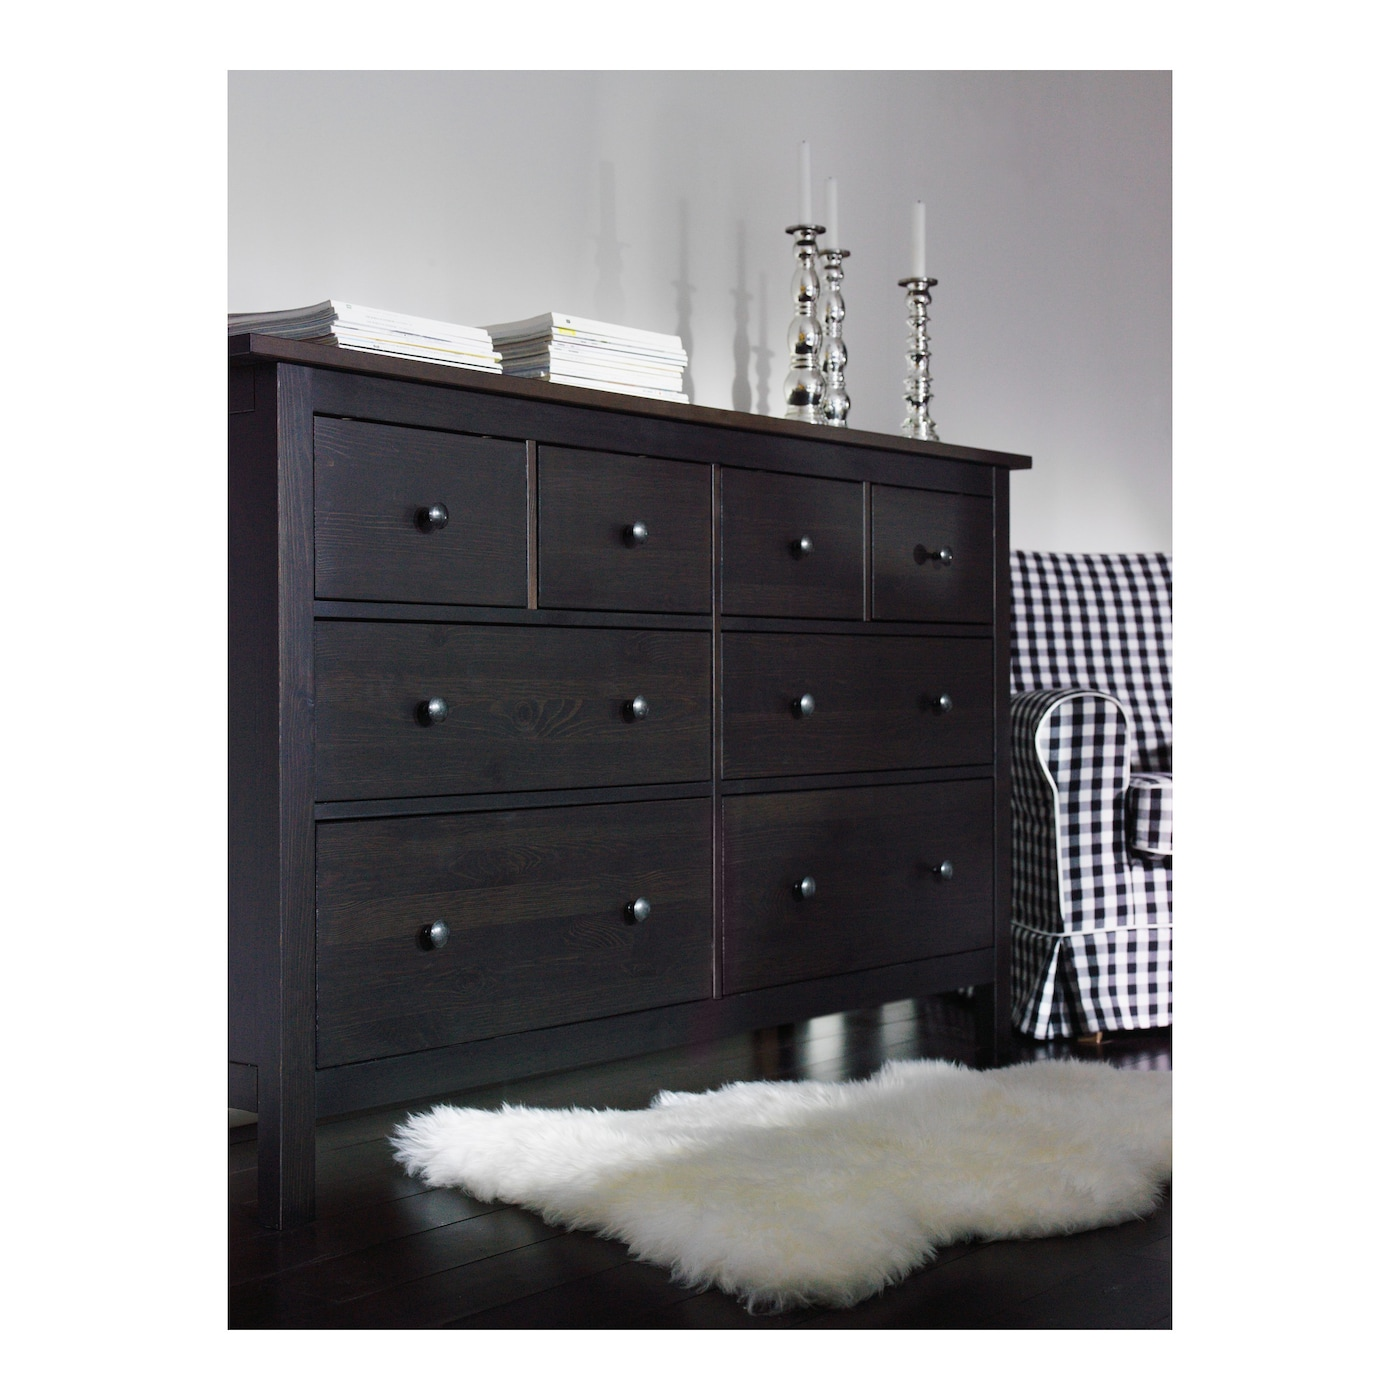 image style recall impeccable deluxe absorbing size pleasing dressers hemnes ikea cheap new zq full knobbed canada brown instructions dresser drawer grey